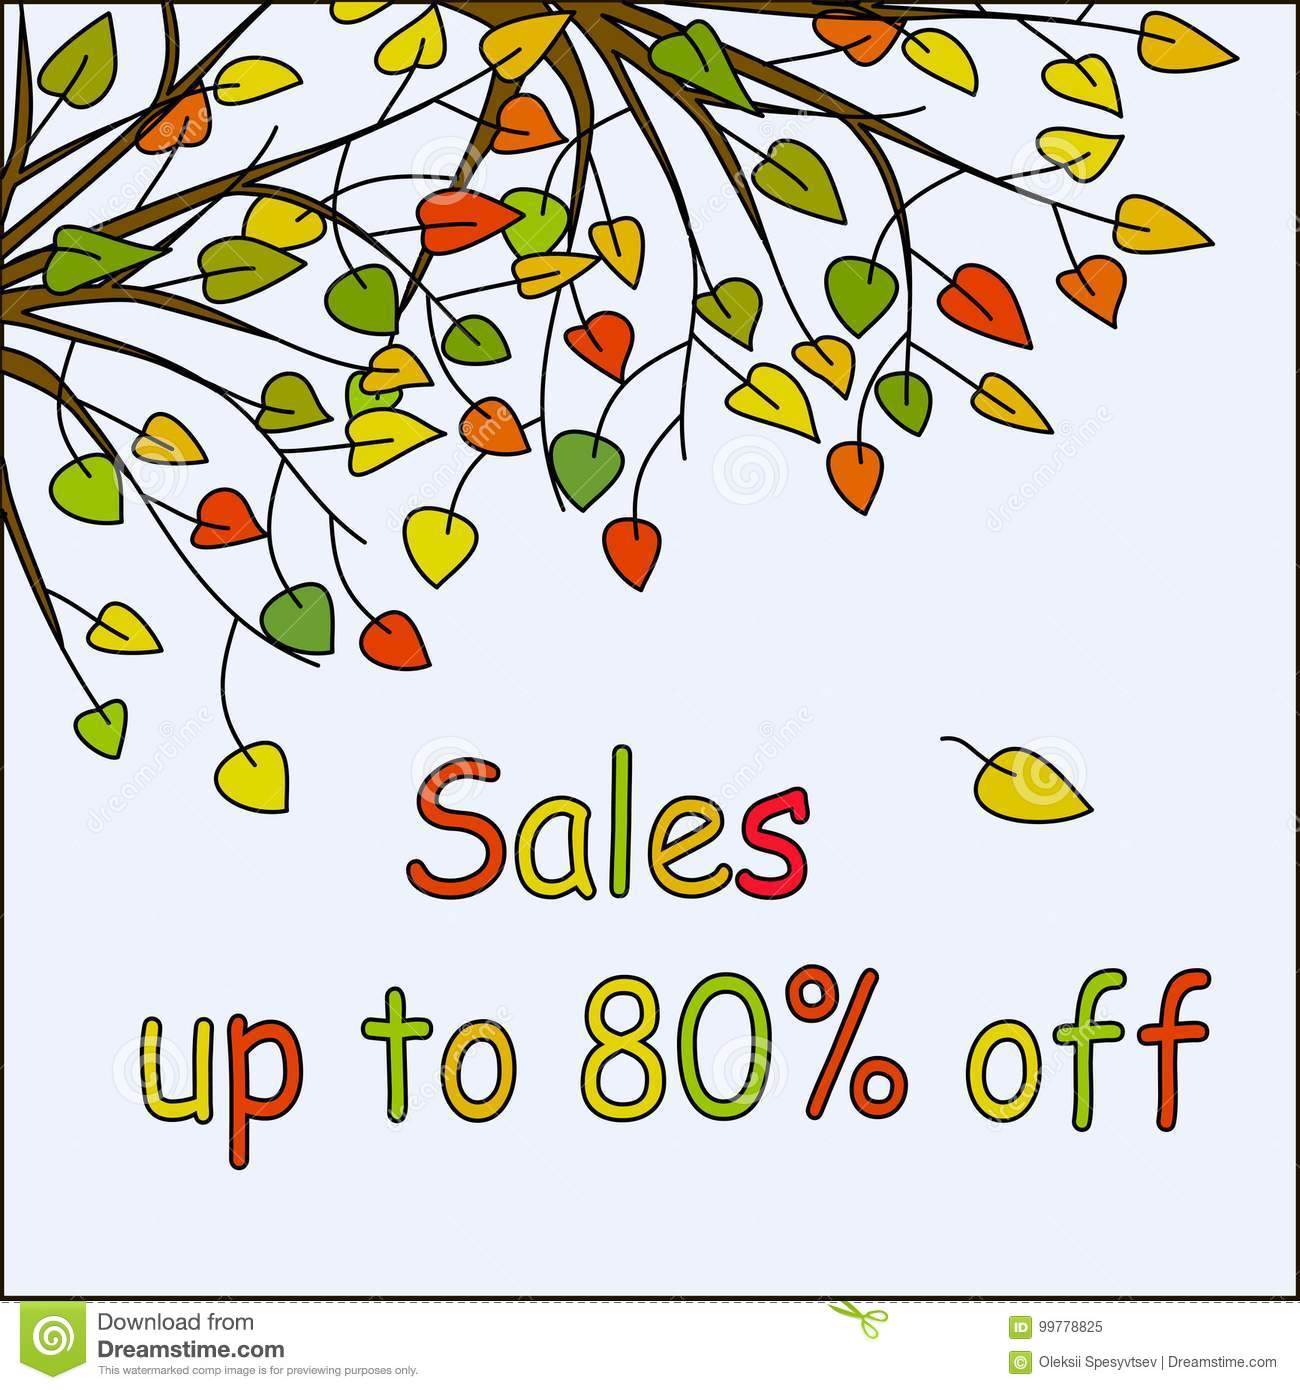 Light blue square background with hand drawn colorful autumn fallen leaves